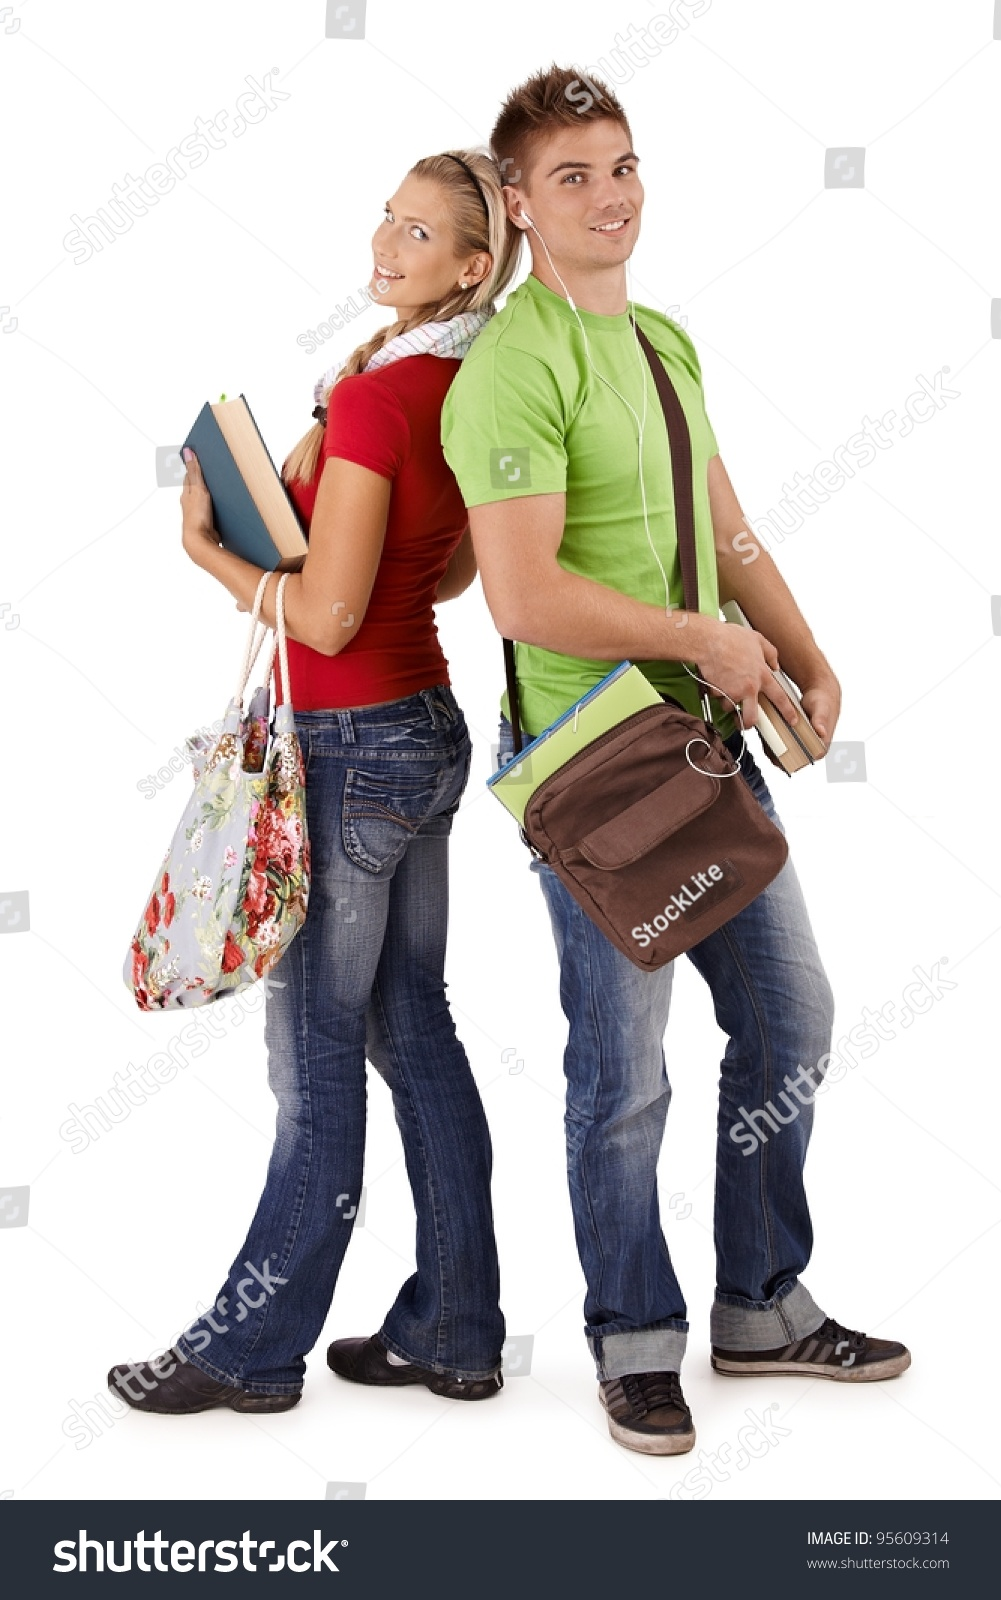 Happy Trendy College Students With Bags And Books Posing Together Smiling At Camera